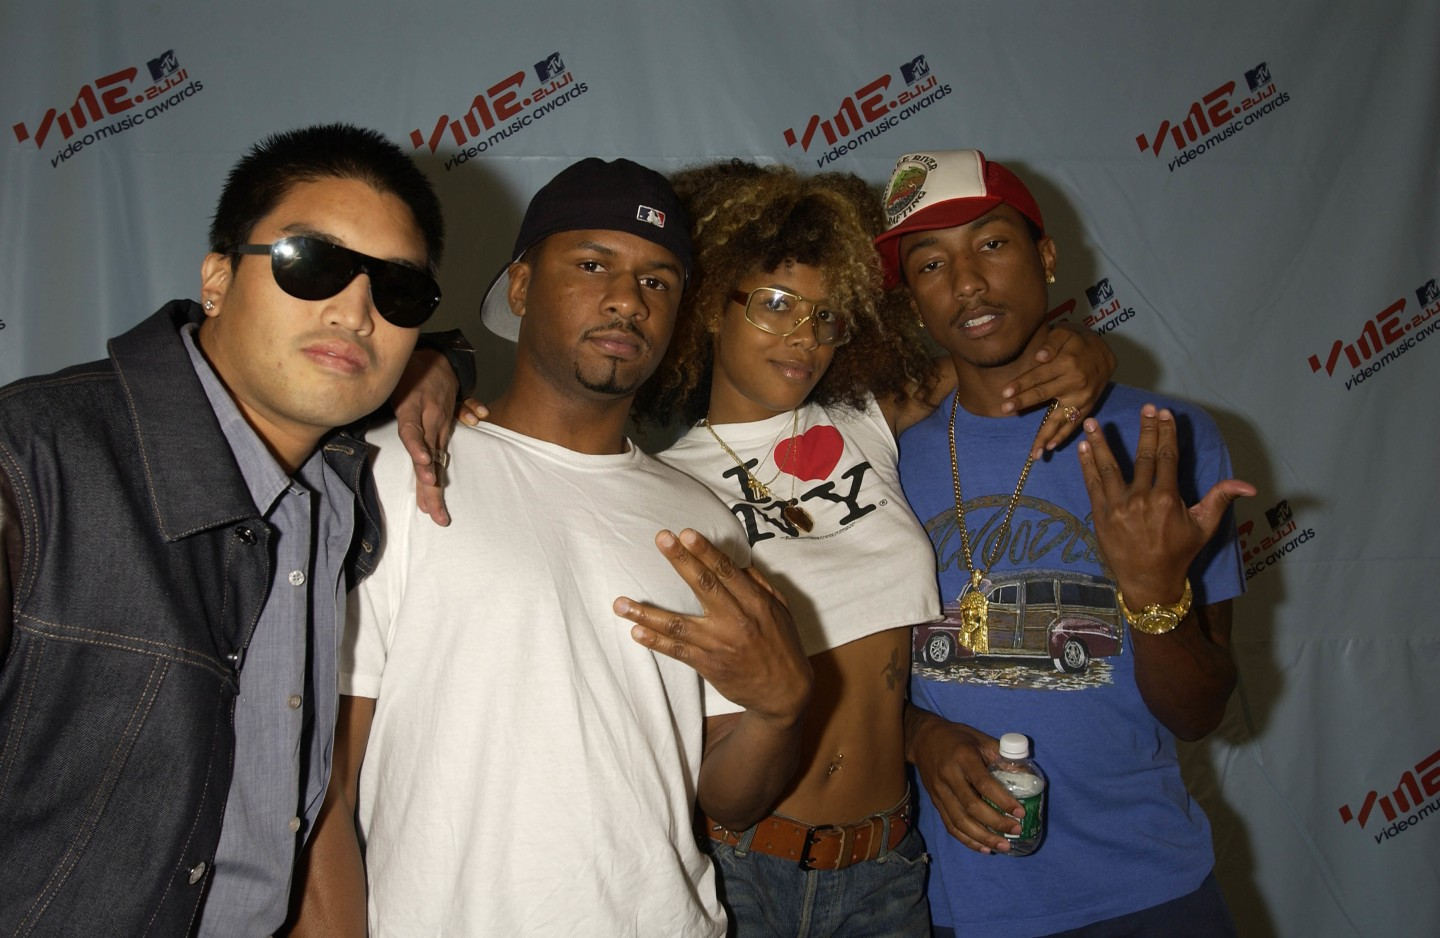 N.E.R.D.'s Shae Haley on <i>Kaleidoscope</i>, the Kelis album that started it all